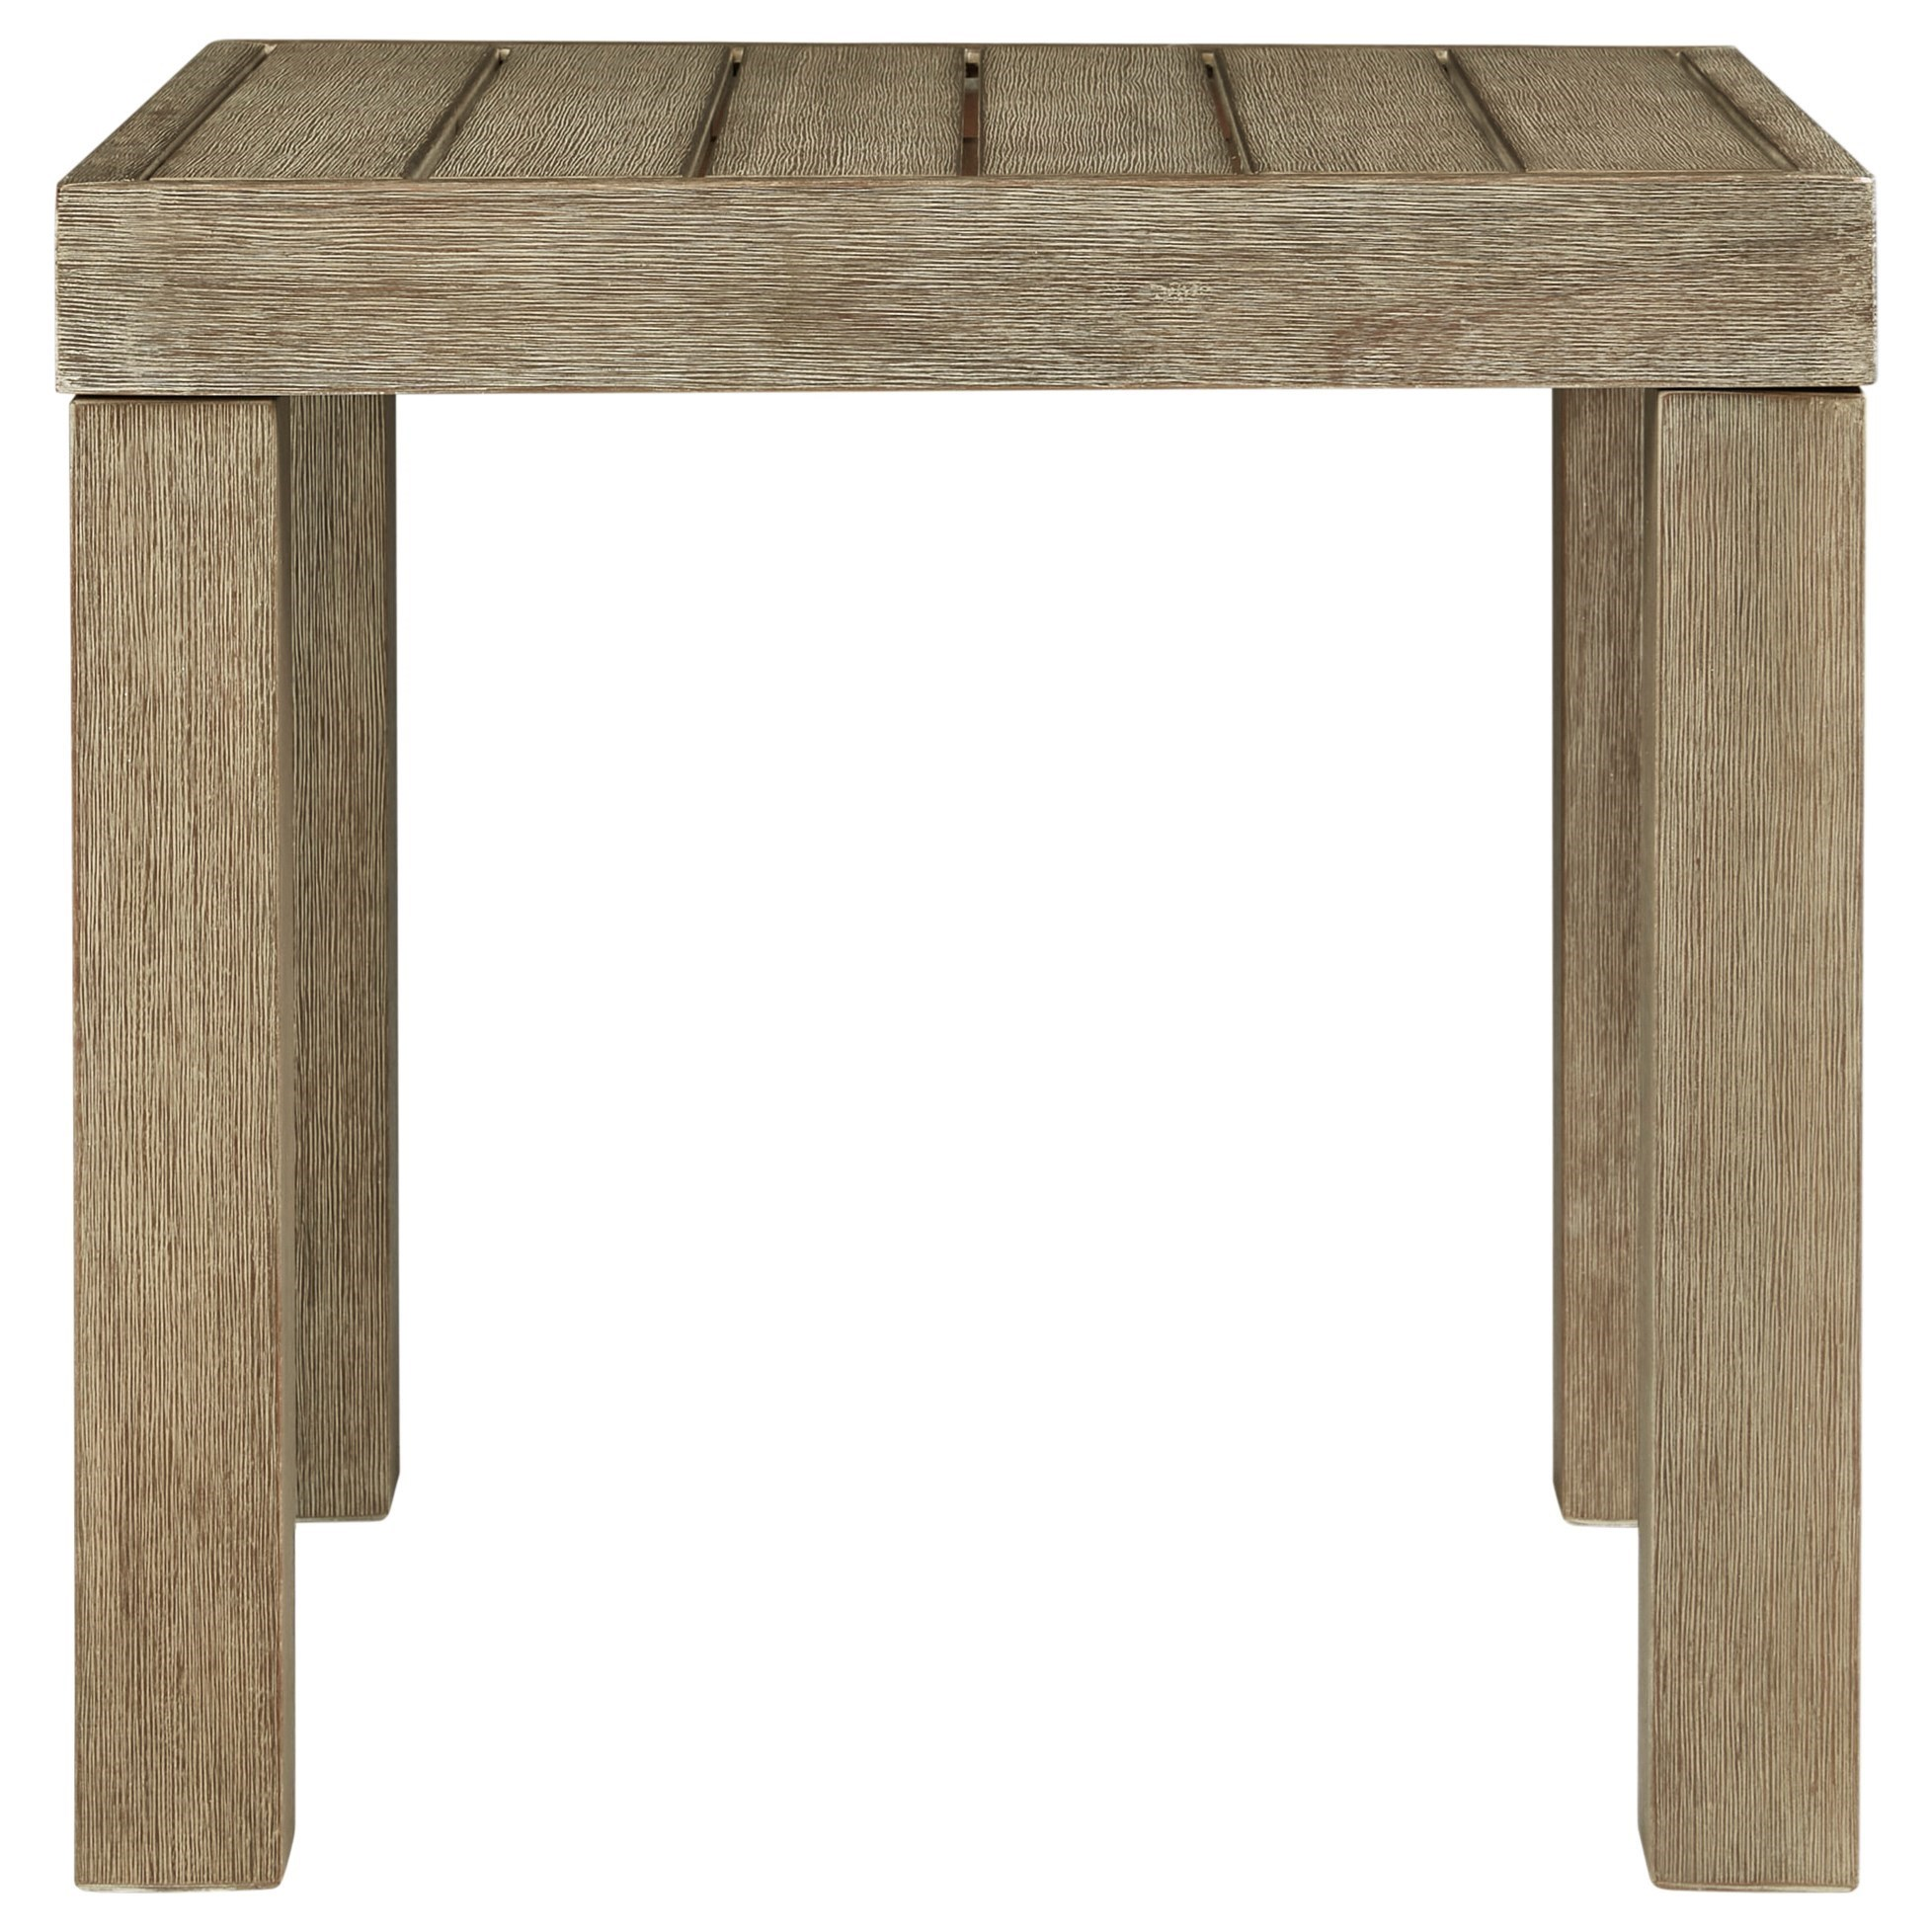 Silo Point Square End Table by Ashley (Signature Design) at Johnny Janosik